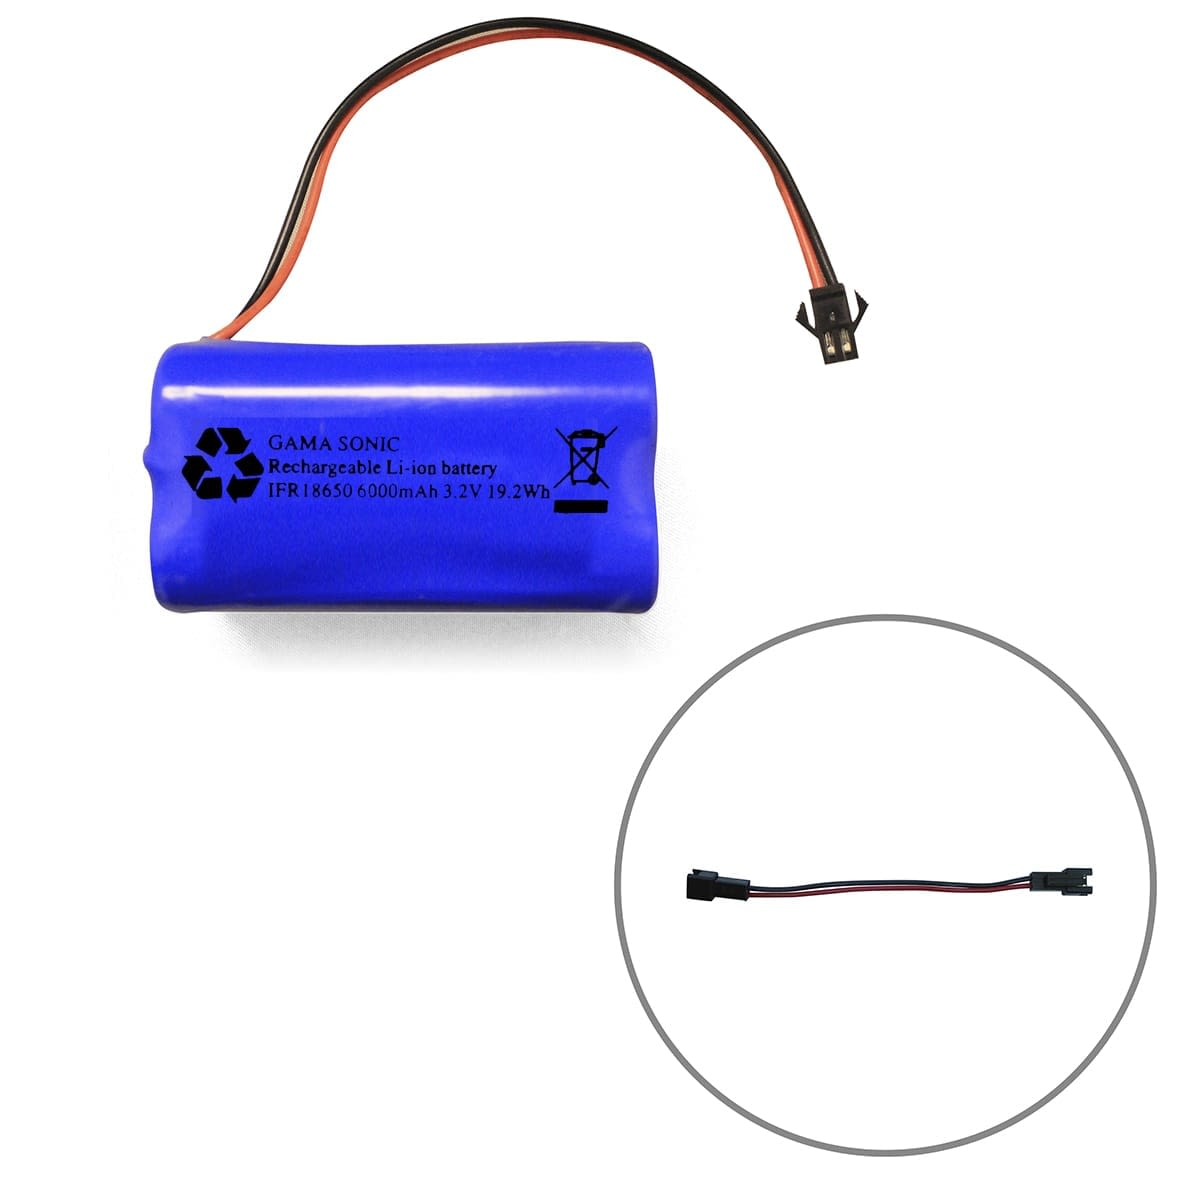 Gama Sonic Battery-Li-ion_3.2V_6000mAh with Connector